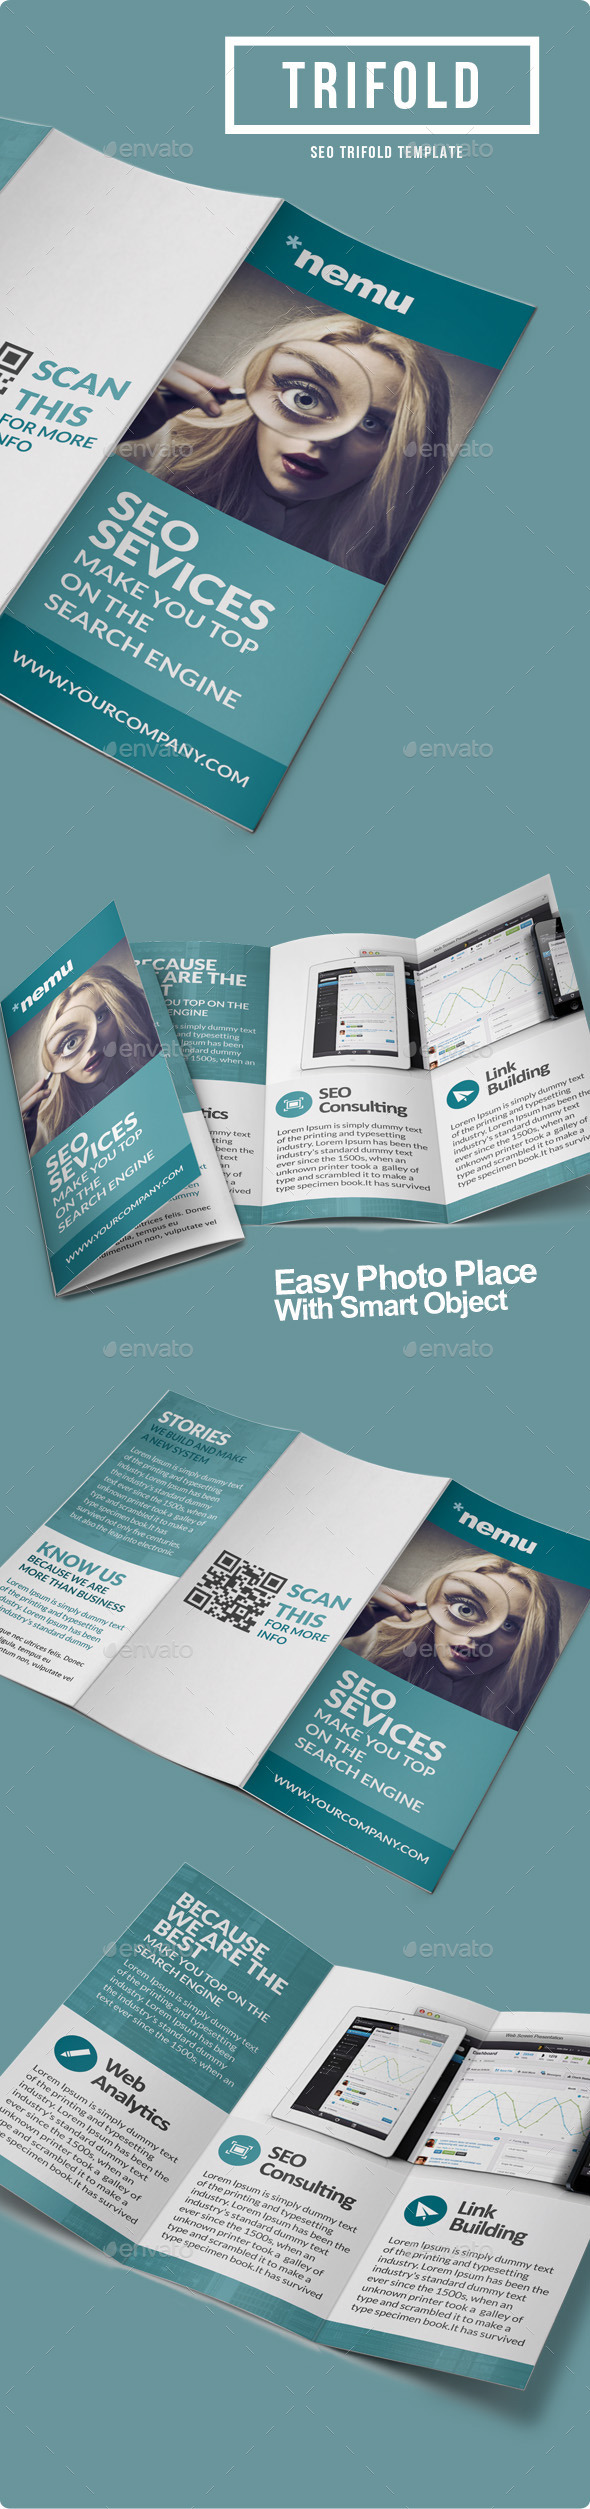 SEO Marketing Trifold Brochure - Informational Brochures